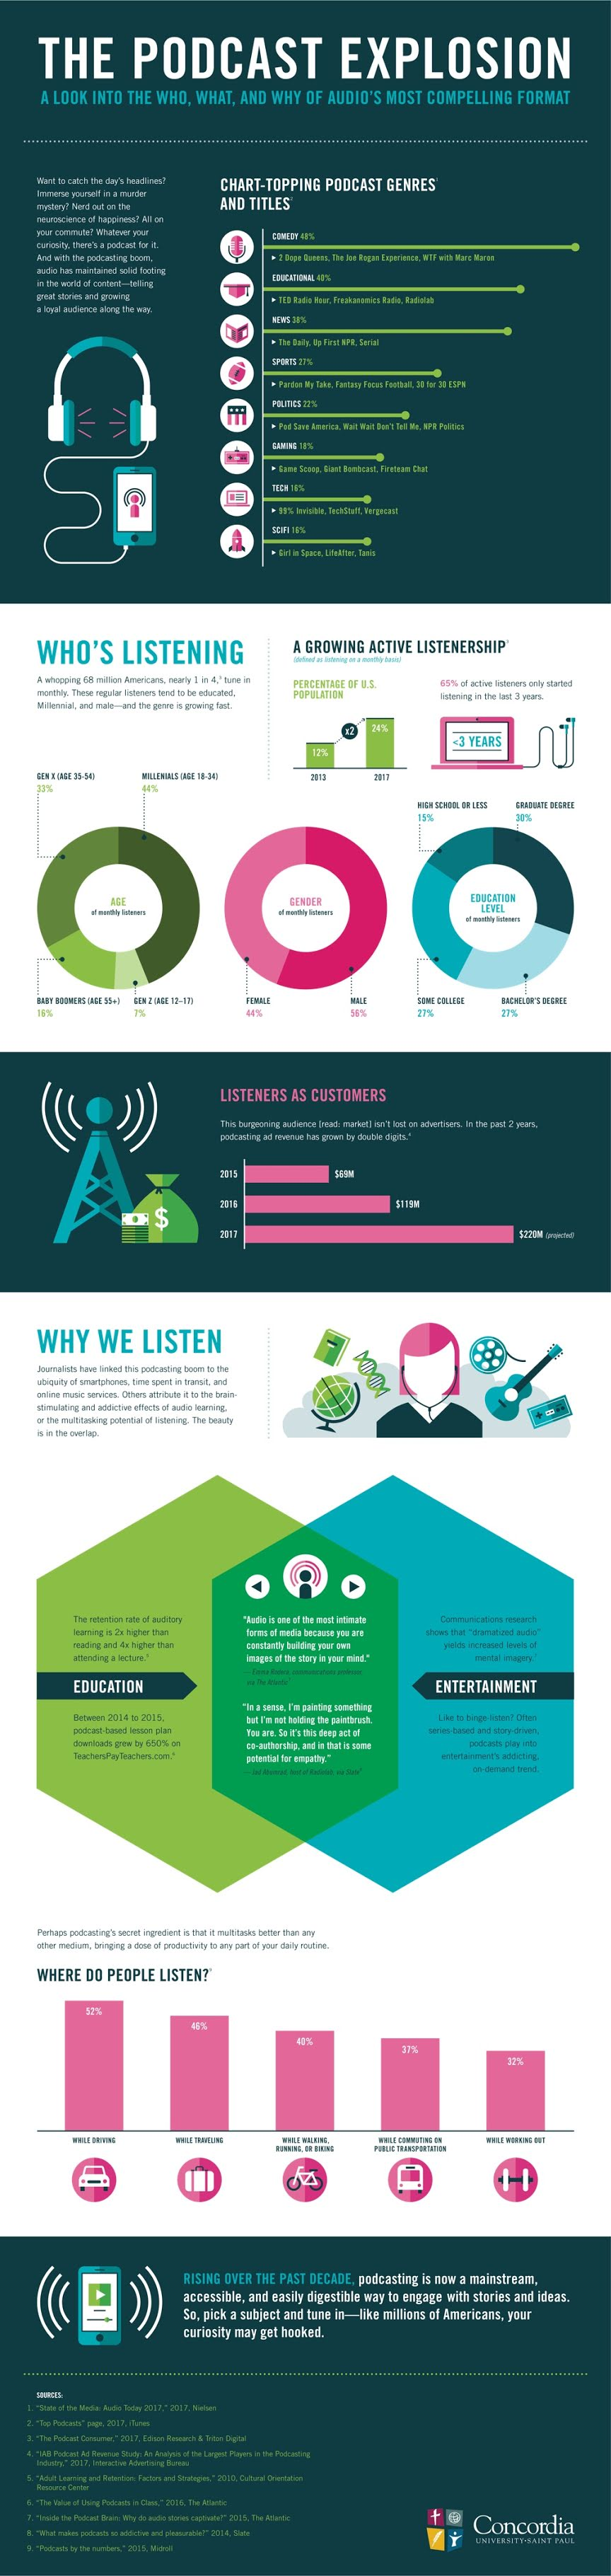 The Podcast Explosion #infographic